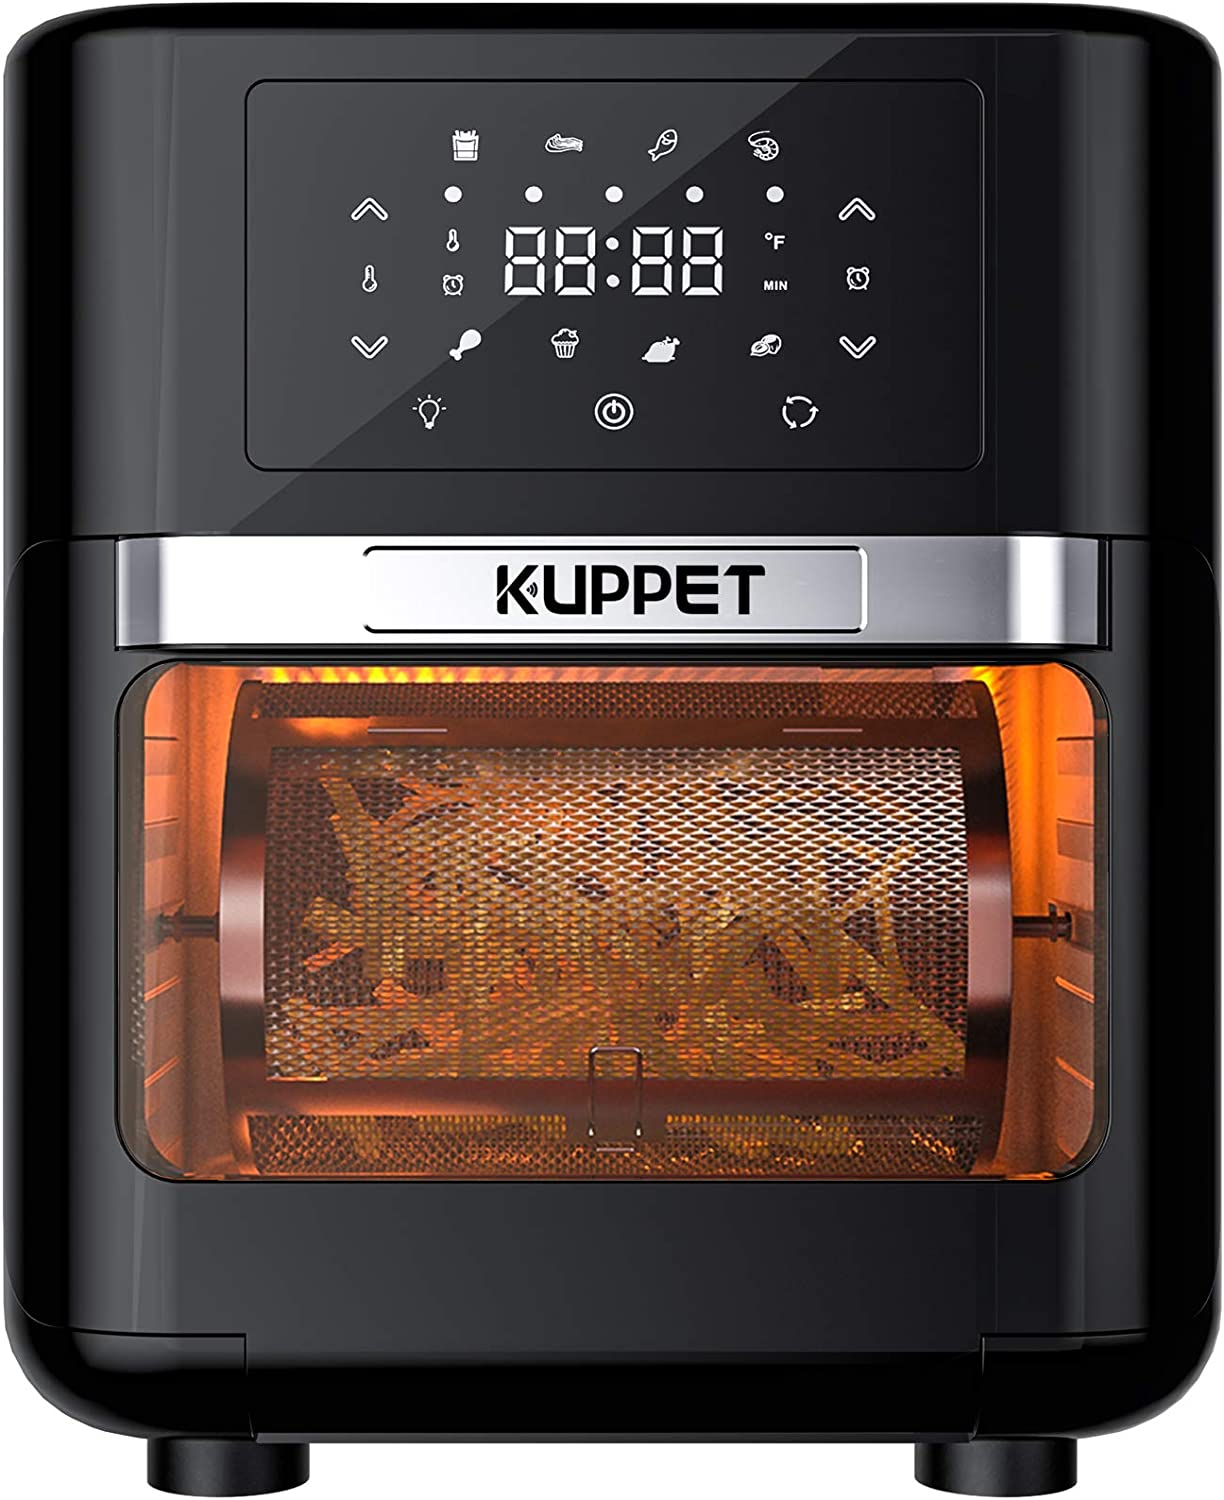 KUPPET Air Fryer Oven, 10.7 Quarts Air Fryer, Rotisserie Oven, 8-in-1 Countertop Oven with Dehydrator & Rotisserie, 1700W Electric Air Fryer with LED Digital Touchscreen, 6 Accessories, ETL Listed